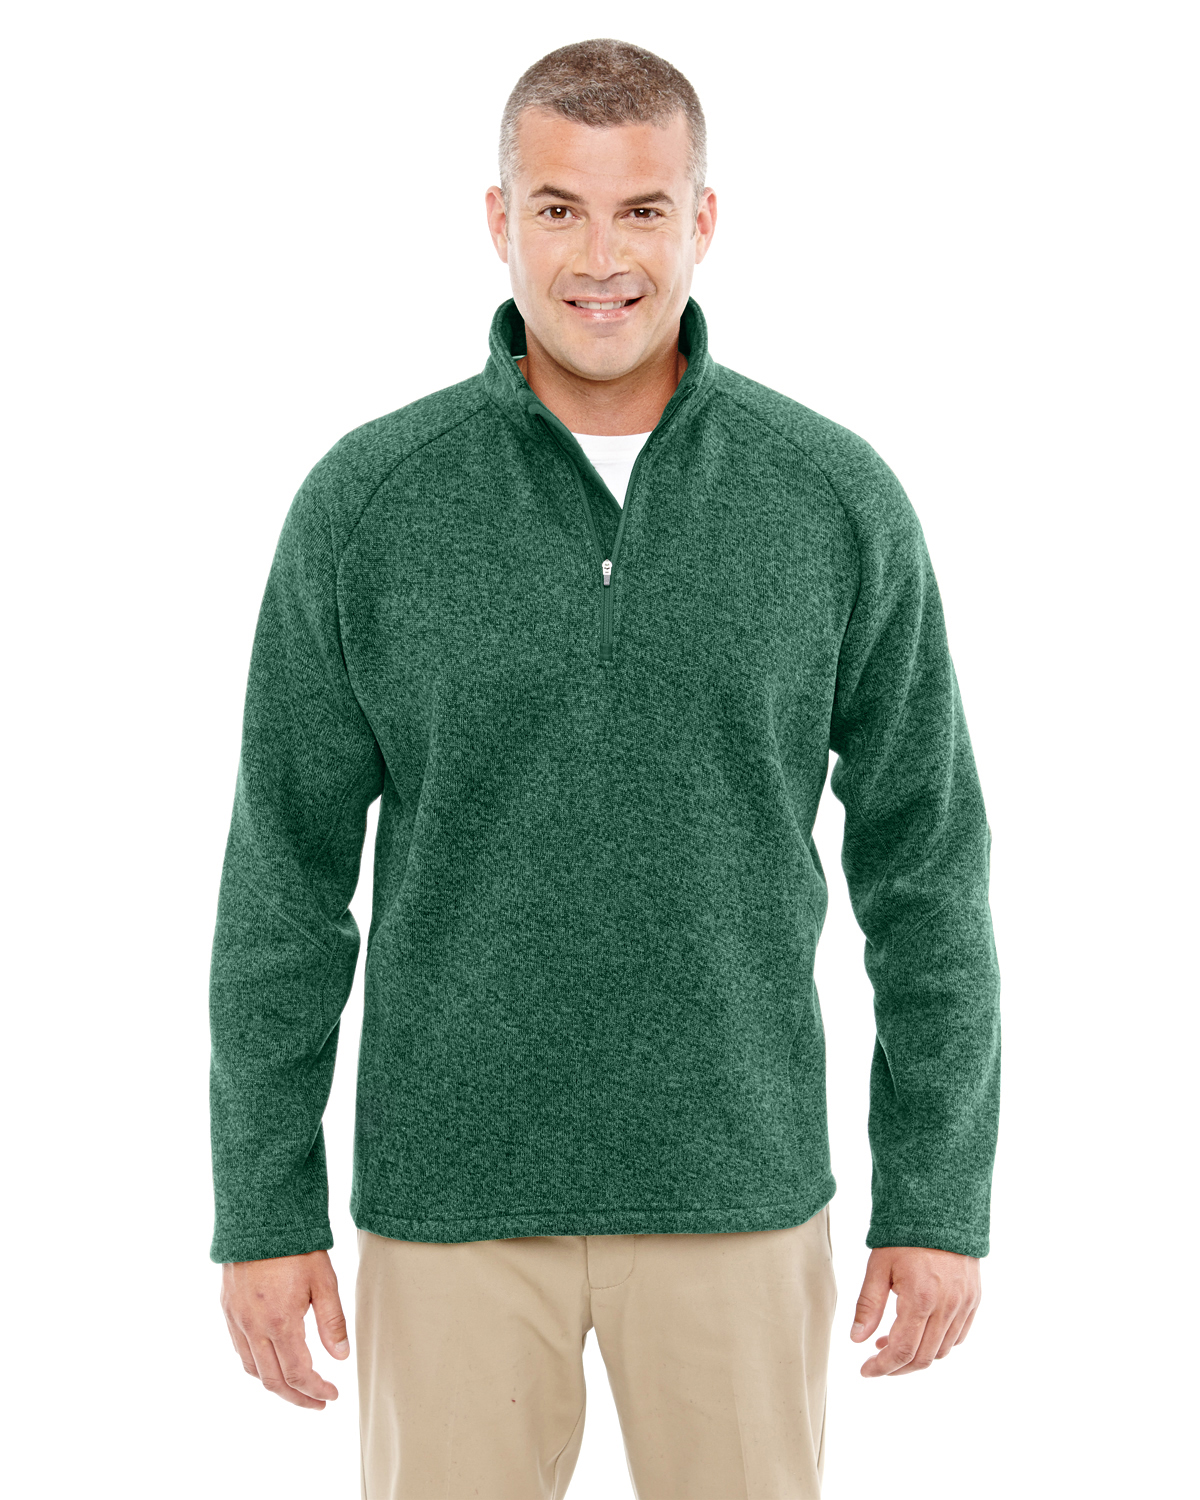 Devon & Jones - DG792 Men's Bristol Sweater Fleece Quarter-Zip